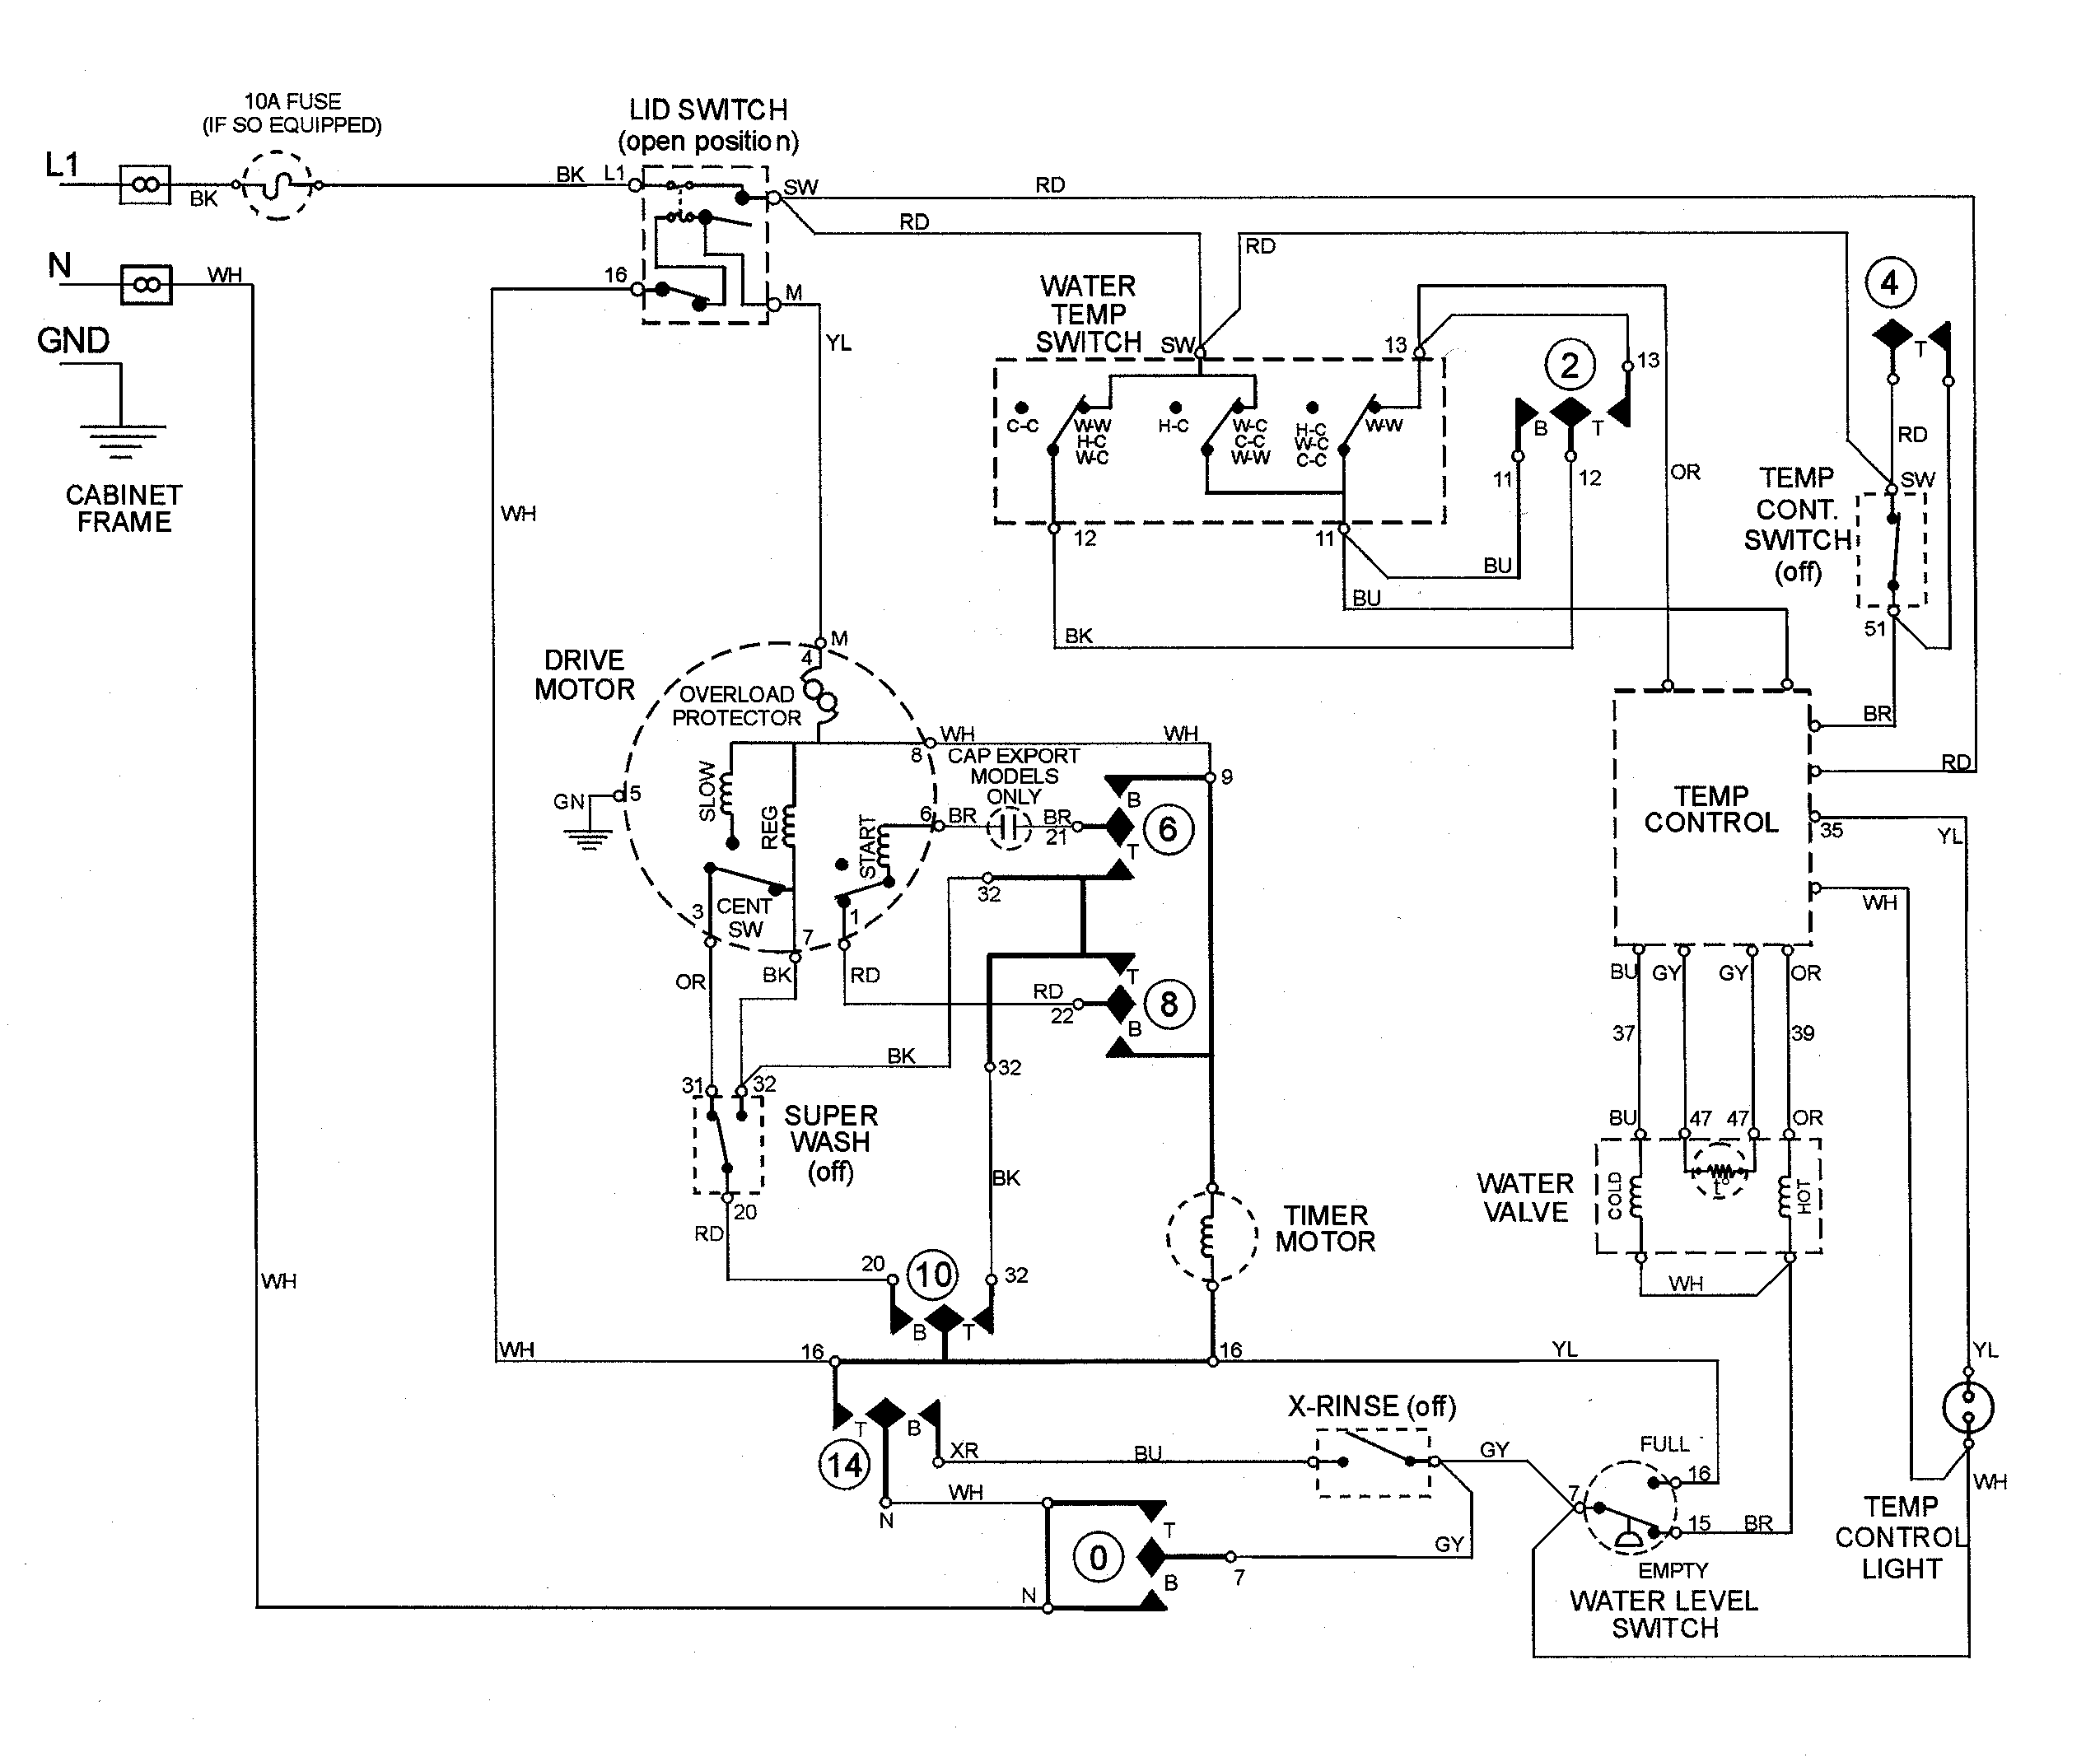 medium resolution of ge ev1 wire diagram wiring diagram advance ge ev 1 wire diagram